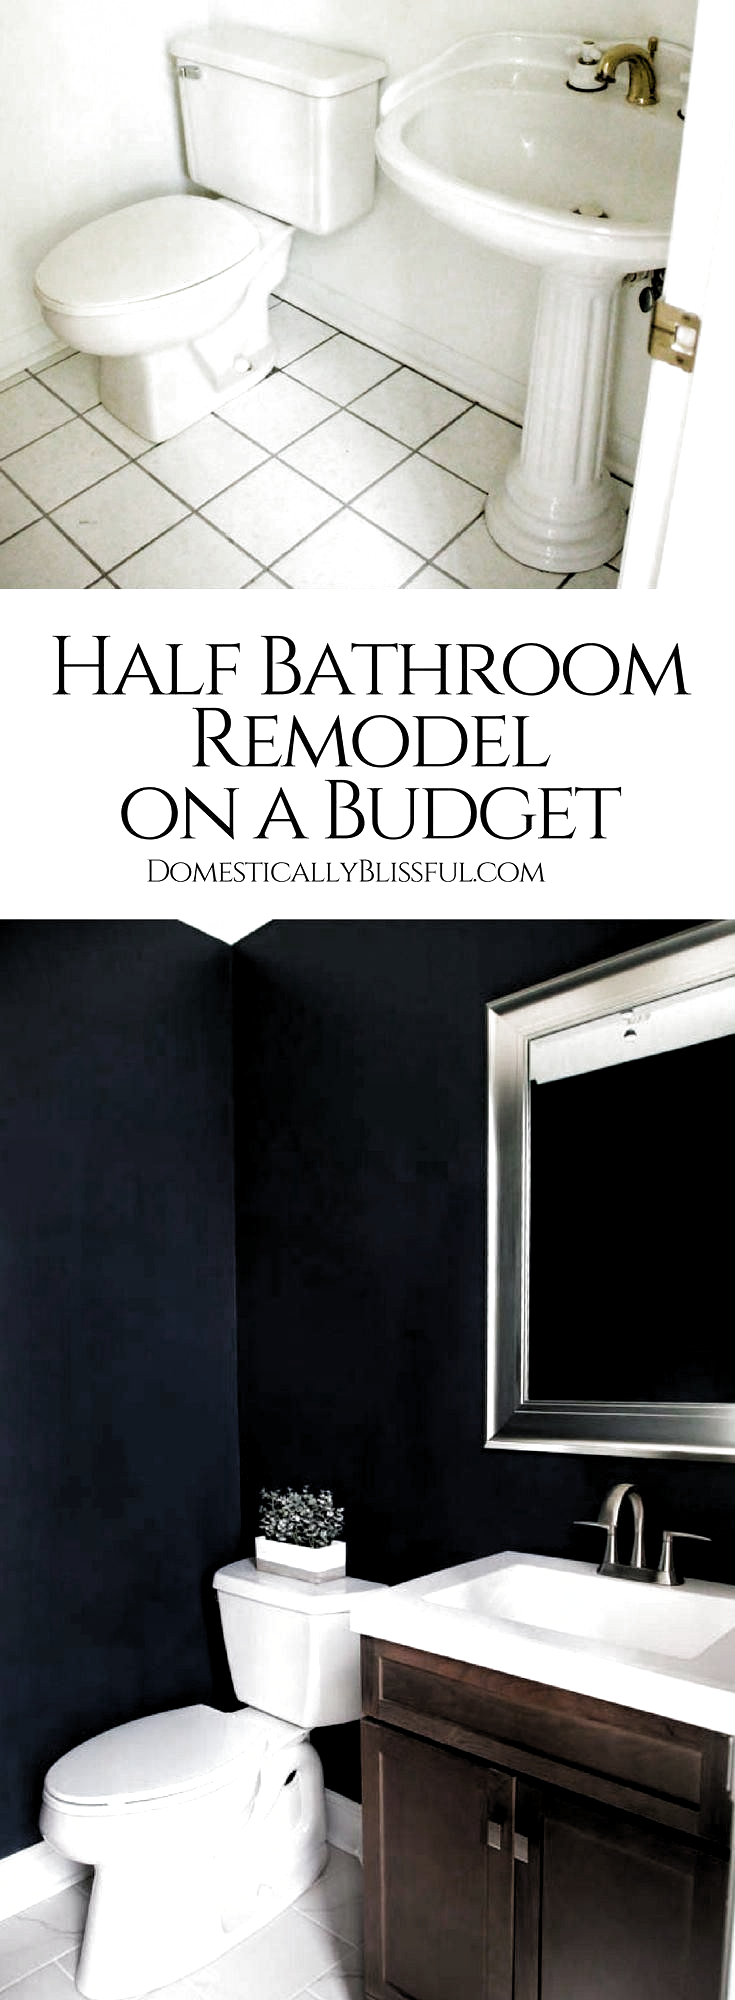 Photo of A half bathroom remodel on a budget, with before & after pictures, featuring dar…